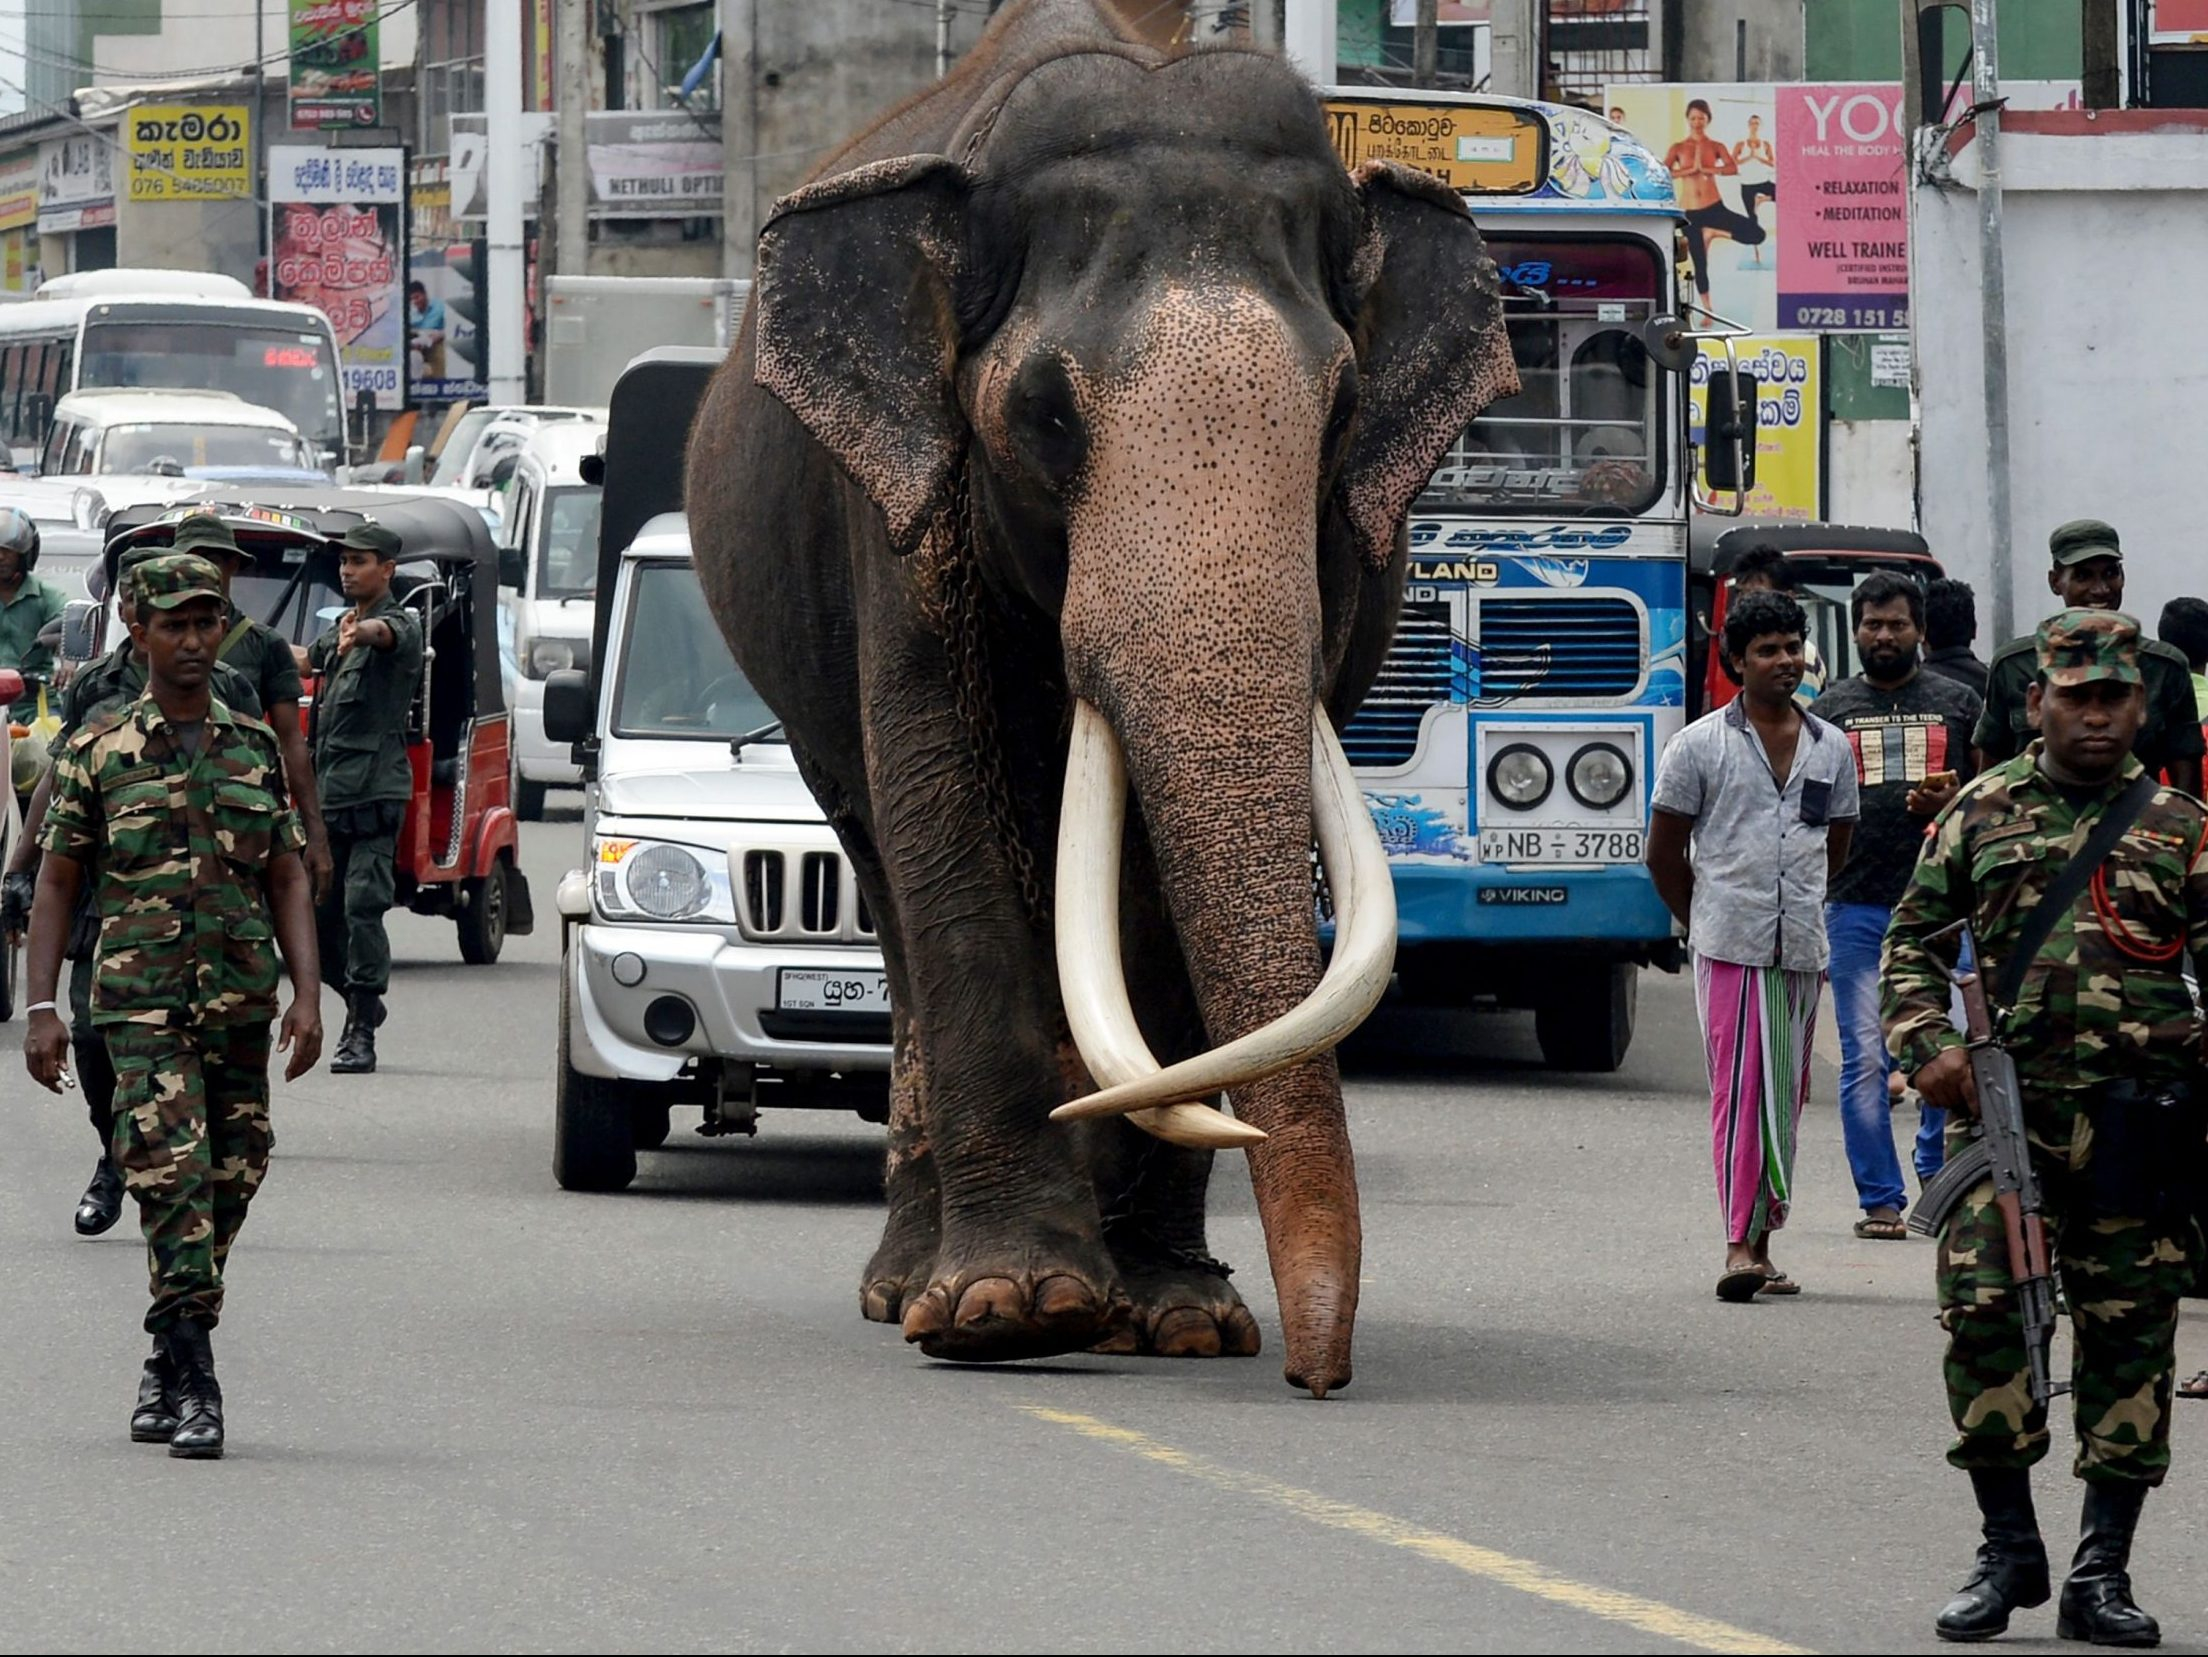 ODDS AND ENDS: Drunk driving elephants and other offbeat offerings